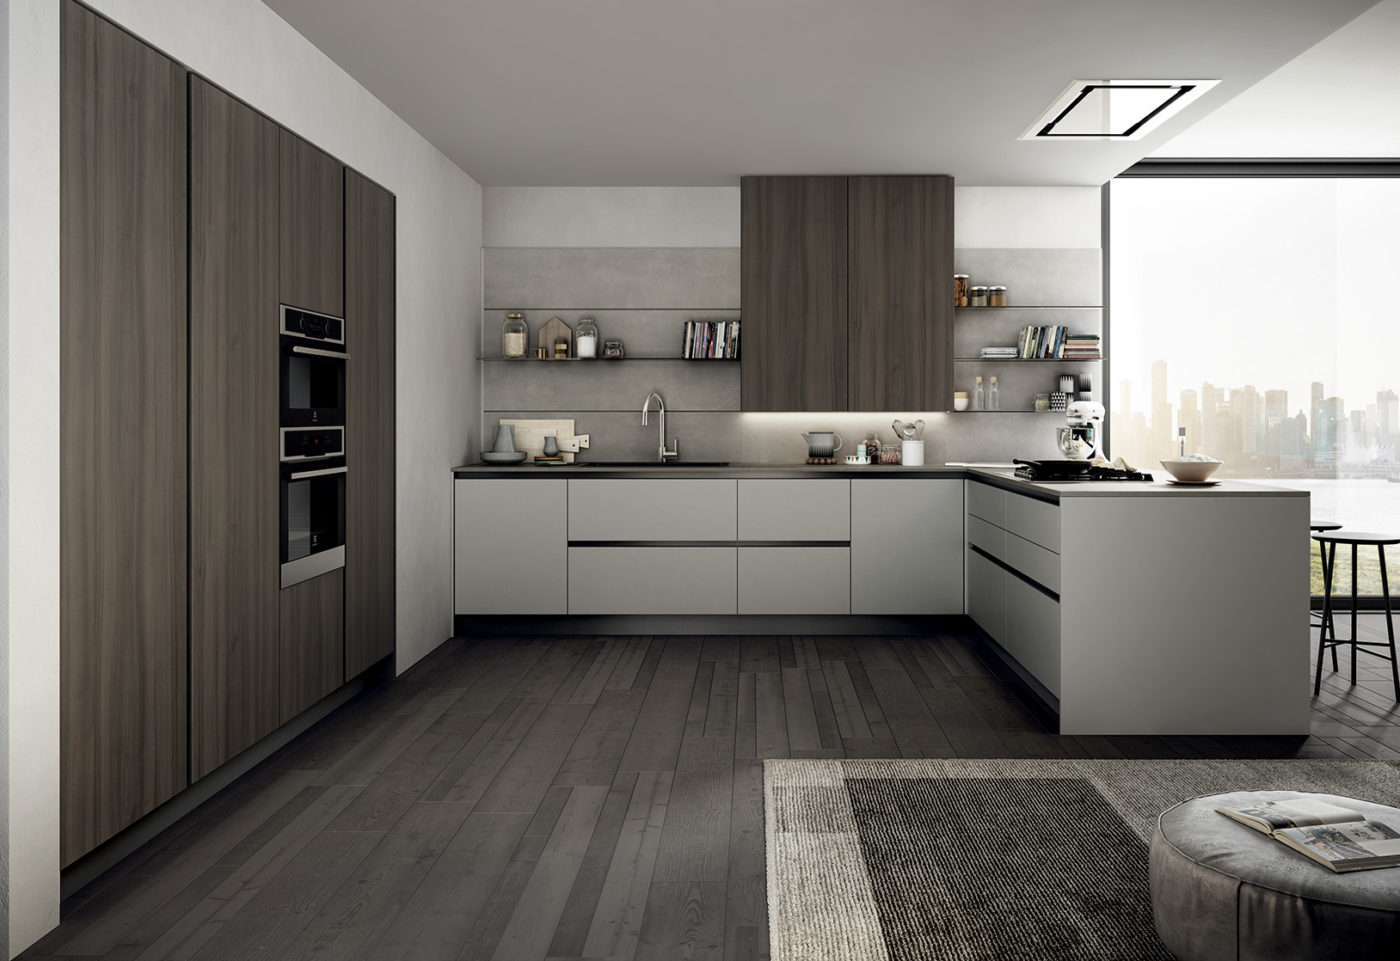 New finishes and compositions for Cloe by Arredo3, featuring versatility - 3